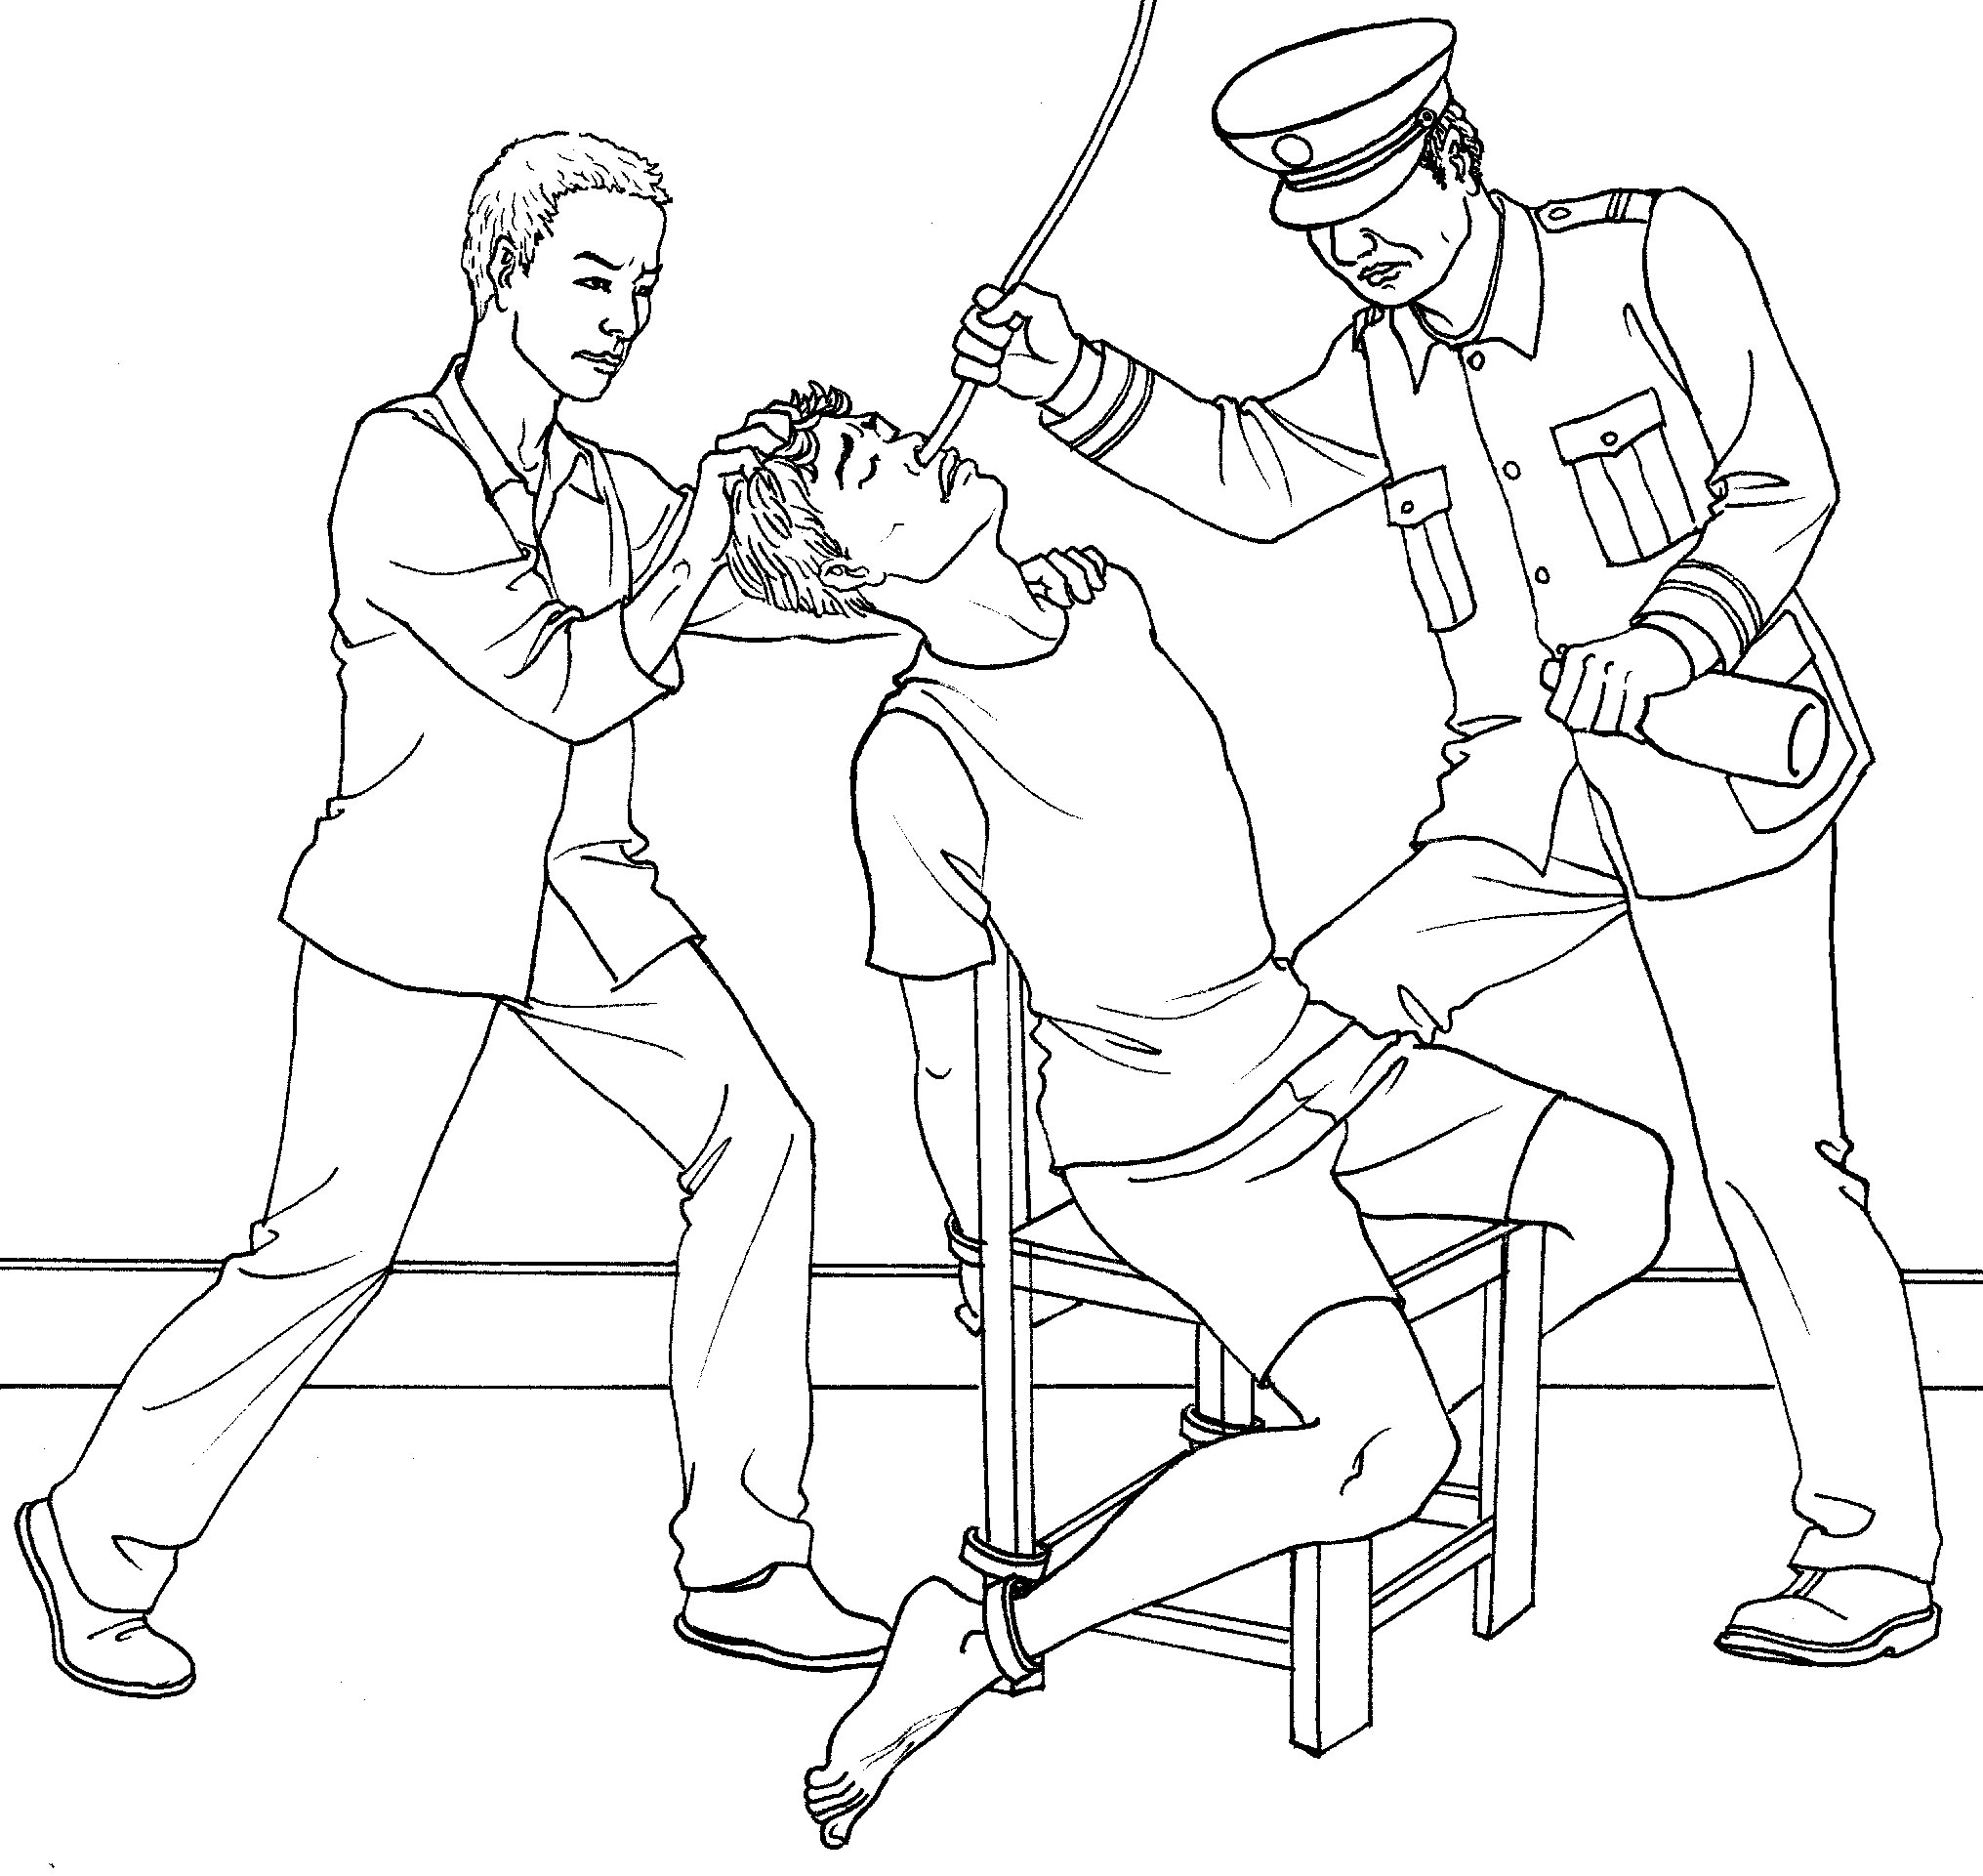 Torture Methods Used to Persecute Falun Gong Practitioners